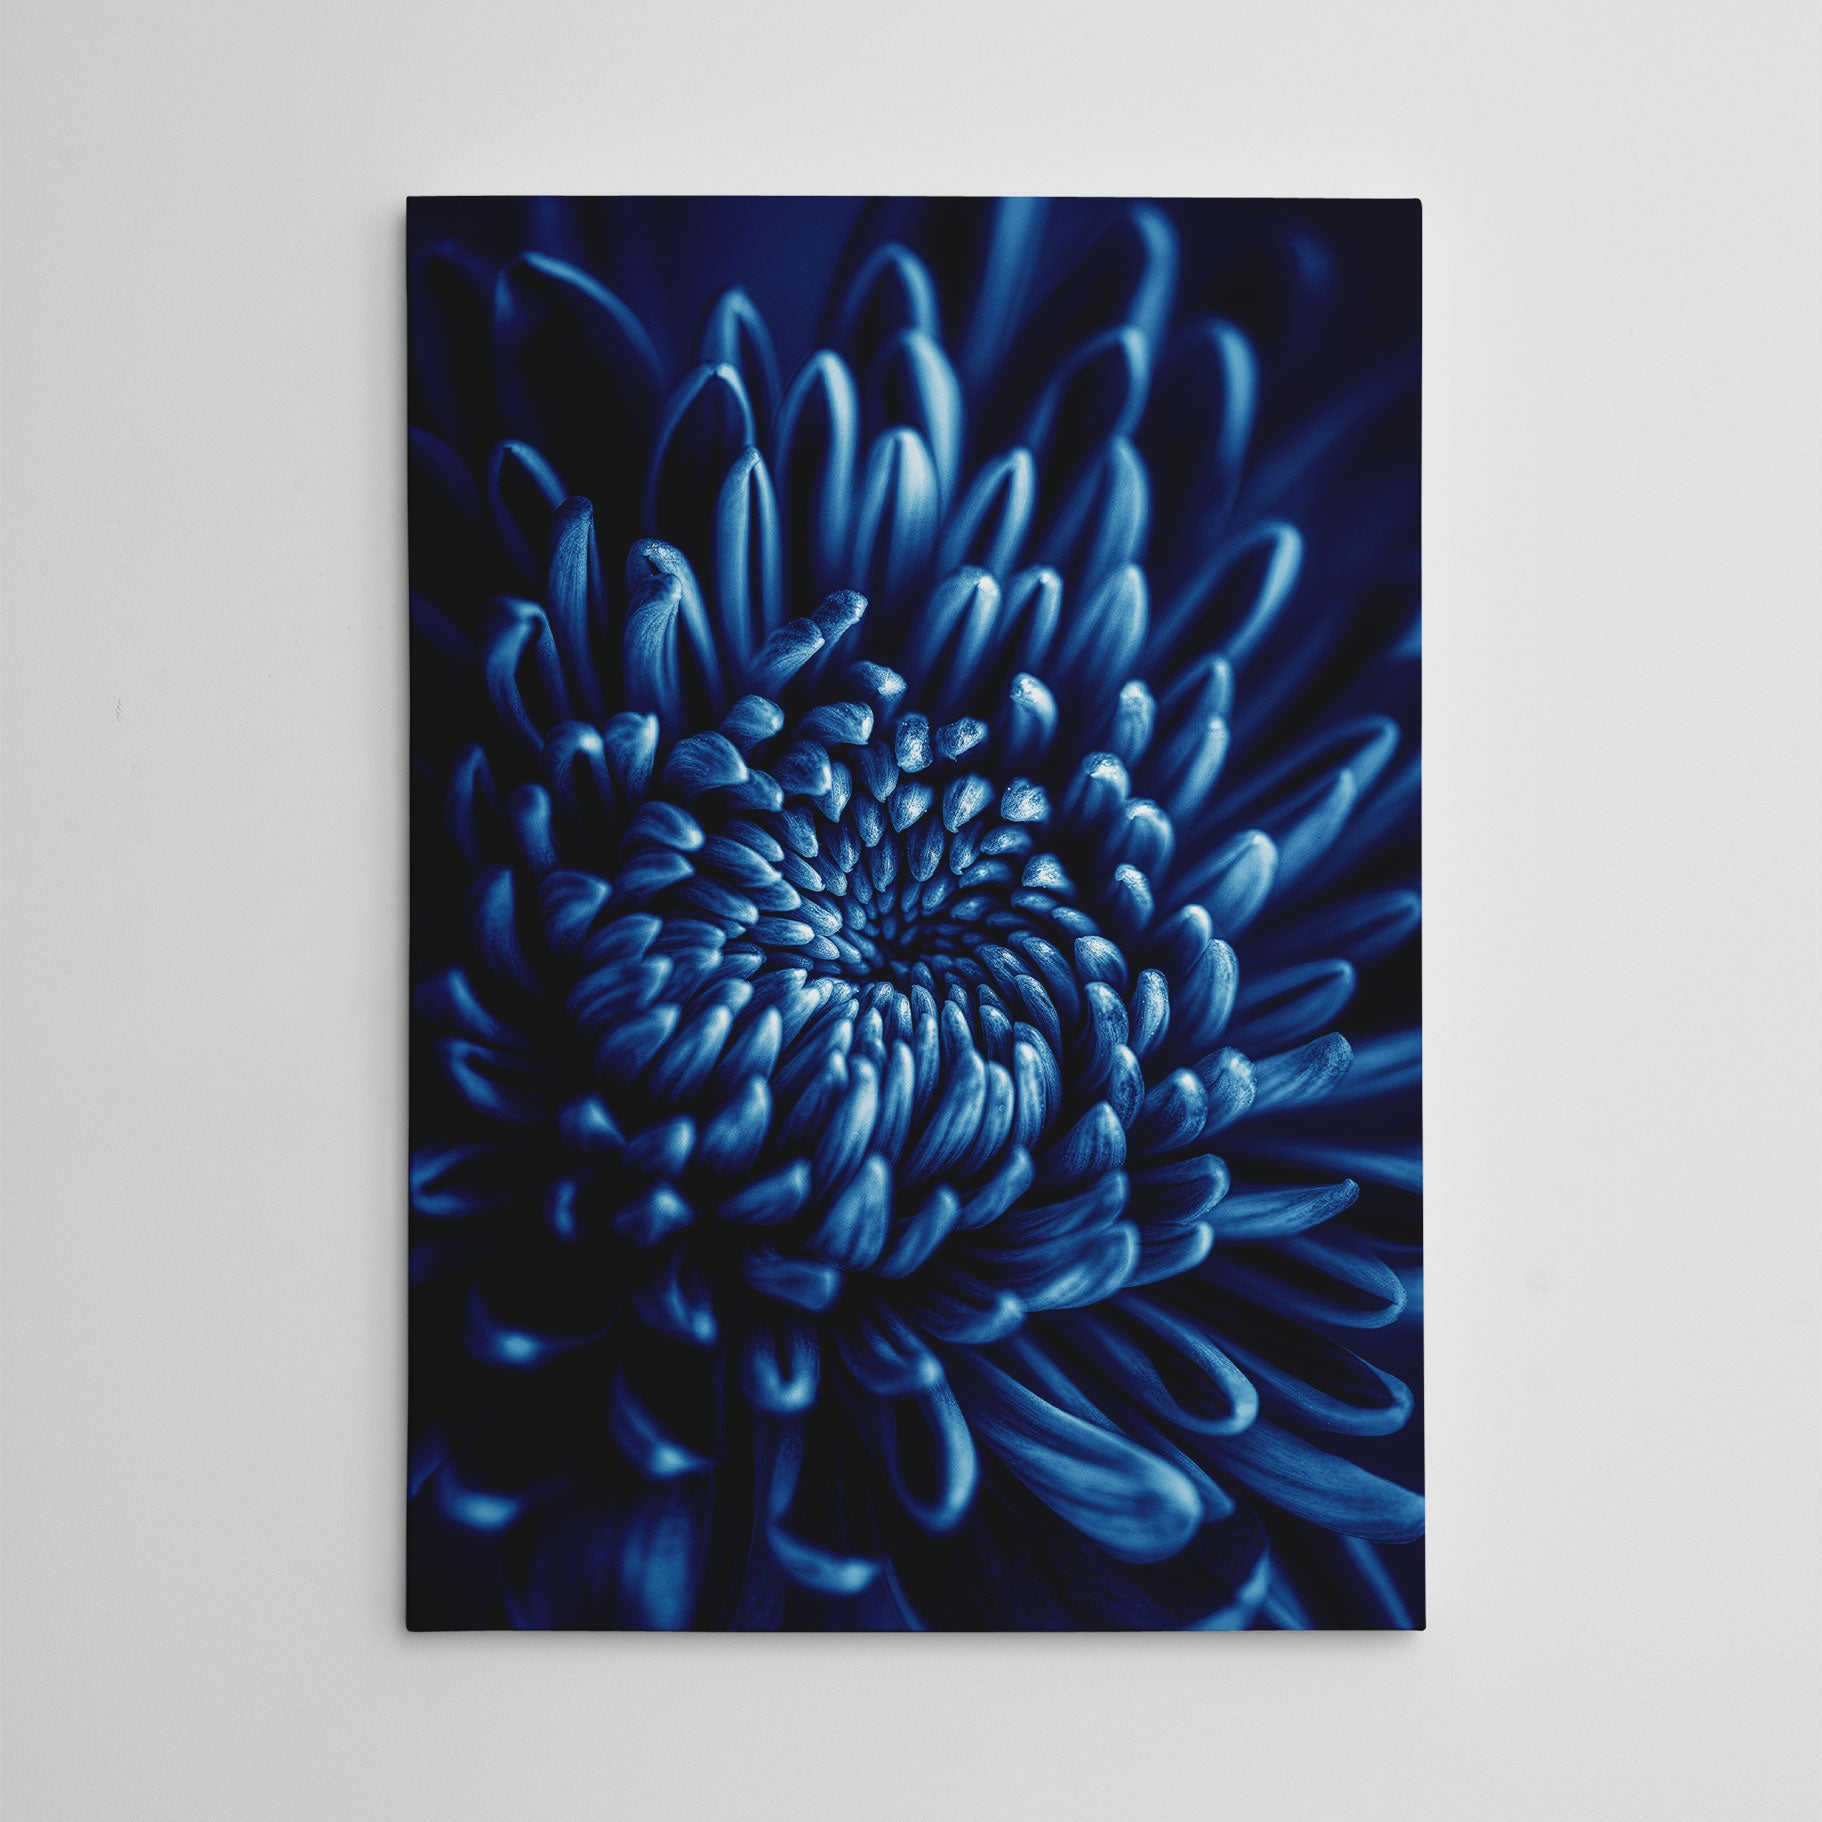 Floral photography canvas print, with a blue flower close-up